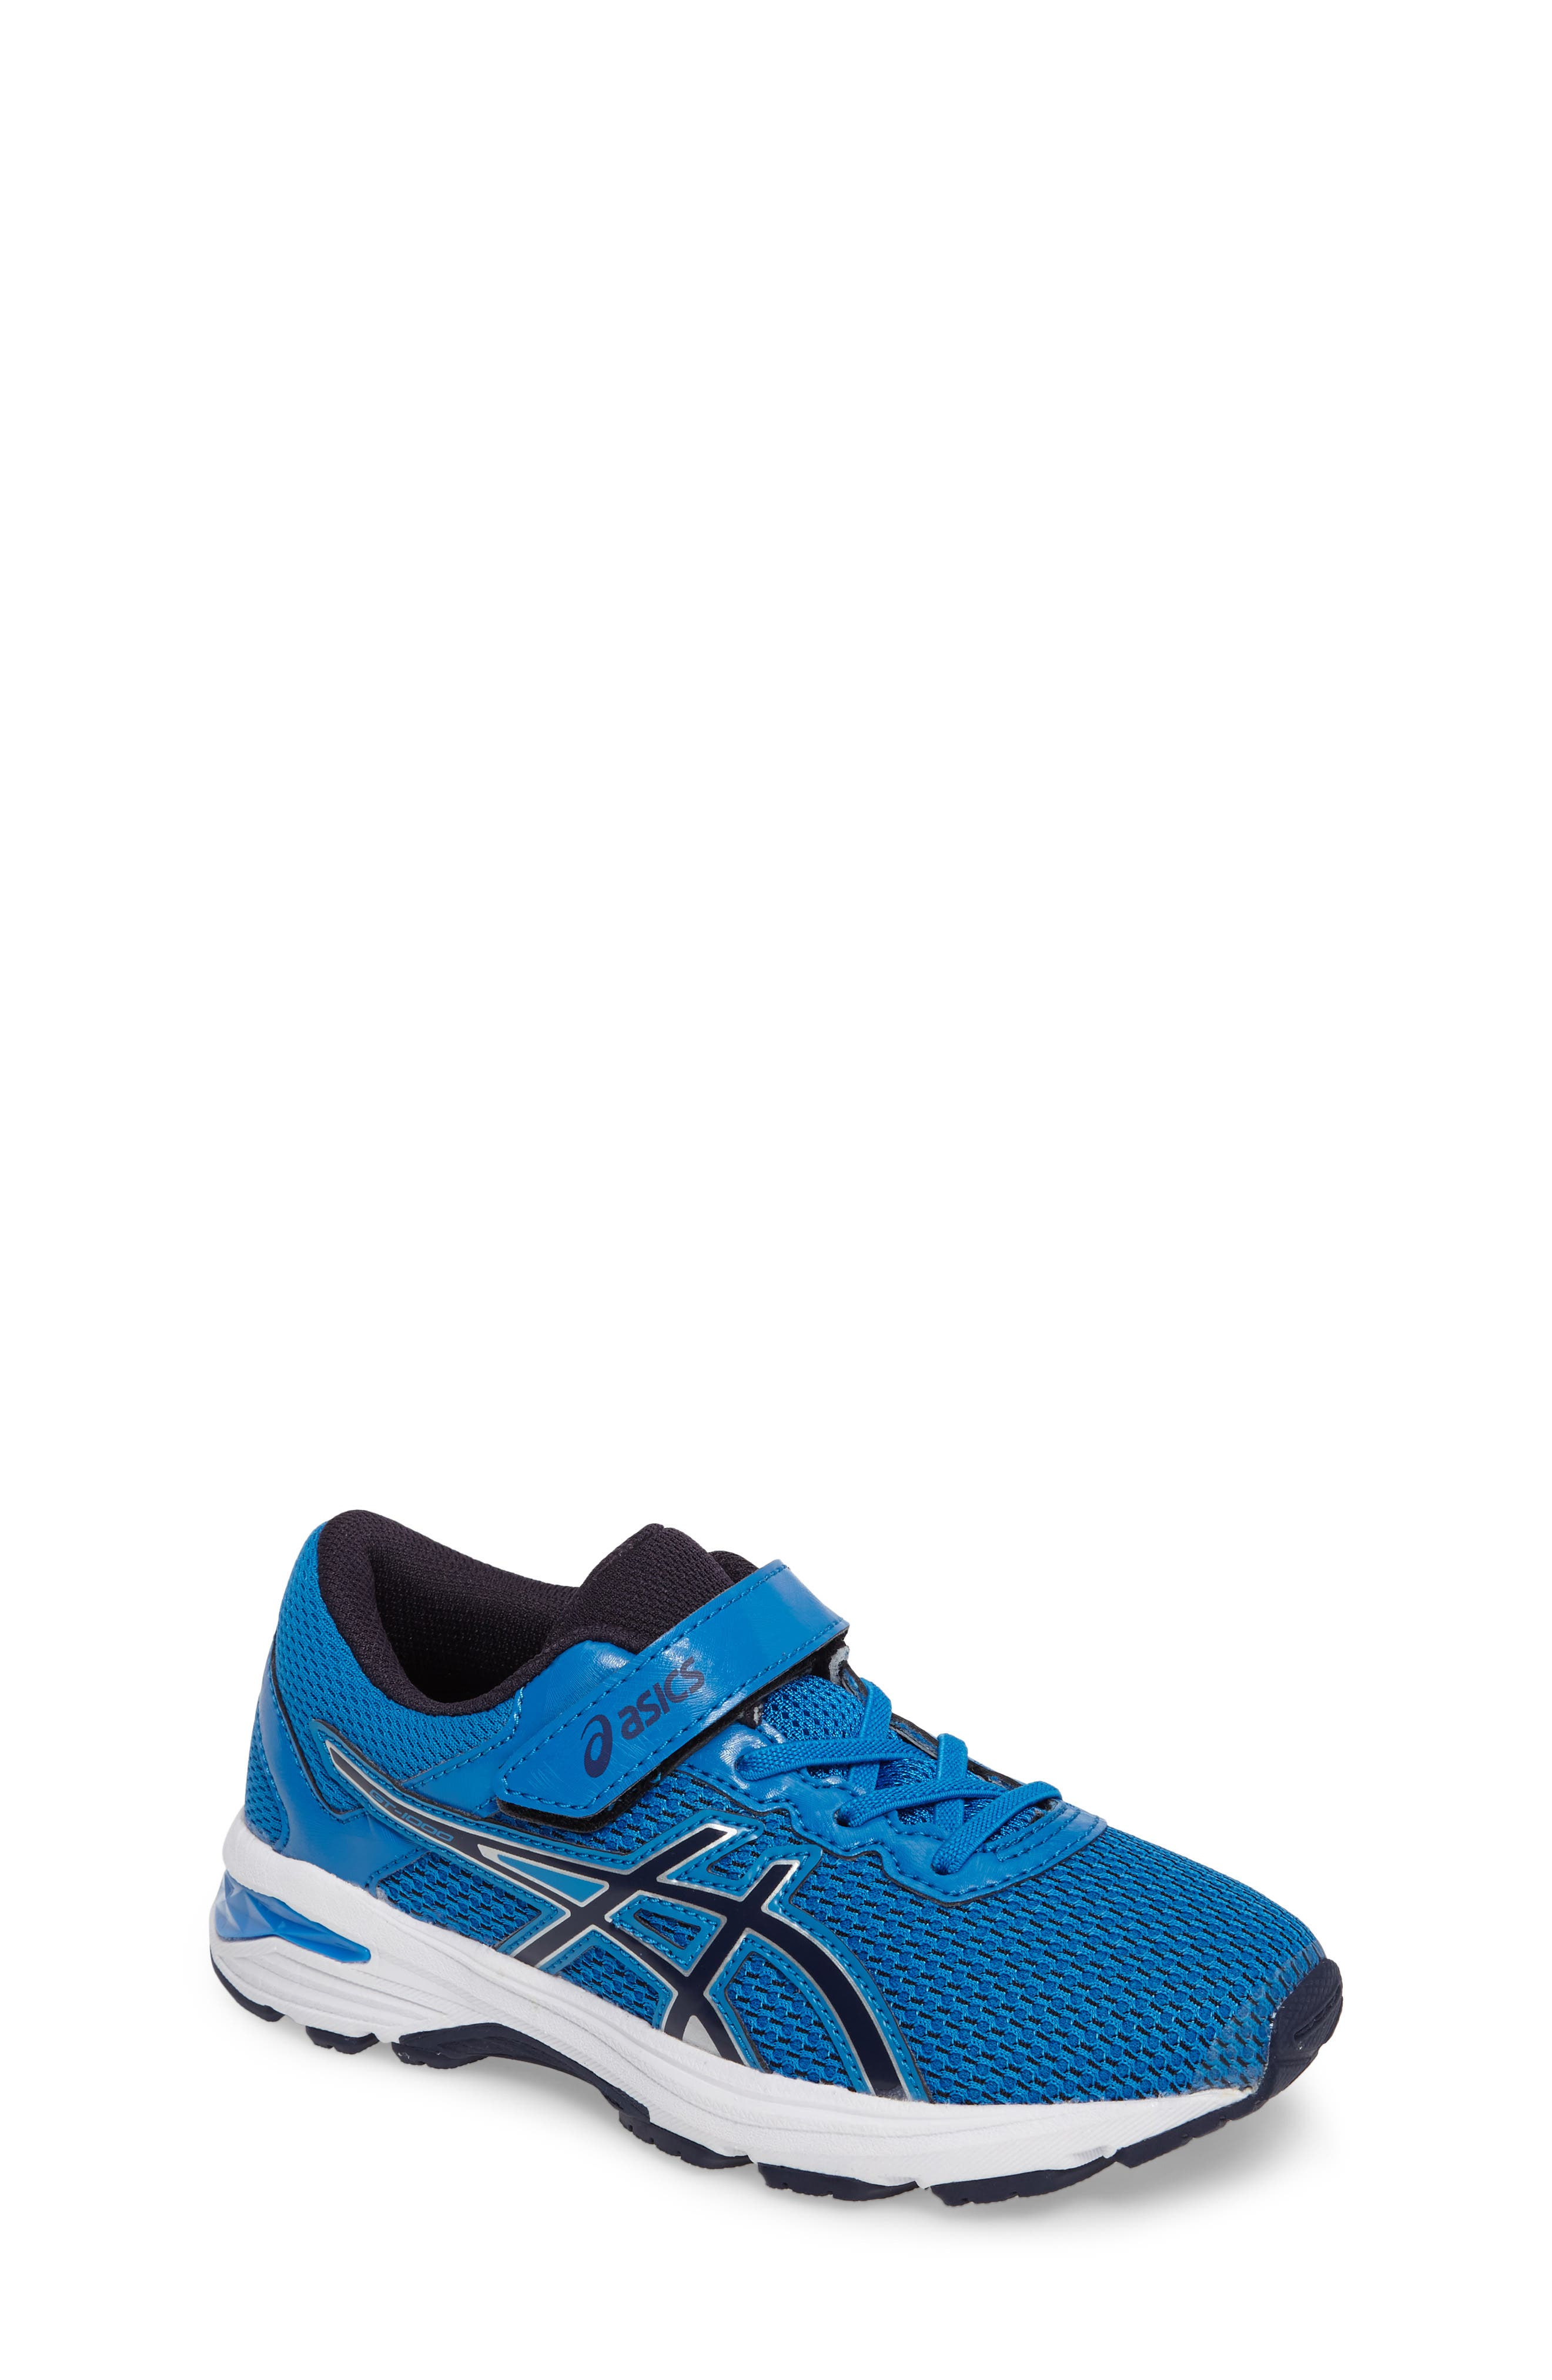 asics shoes for boys